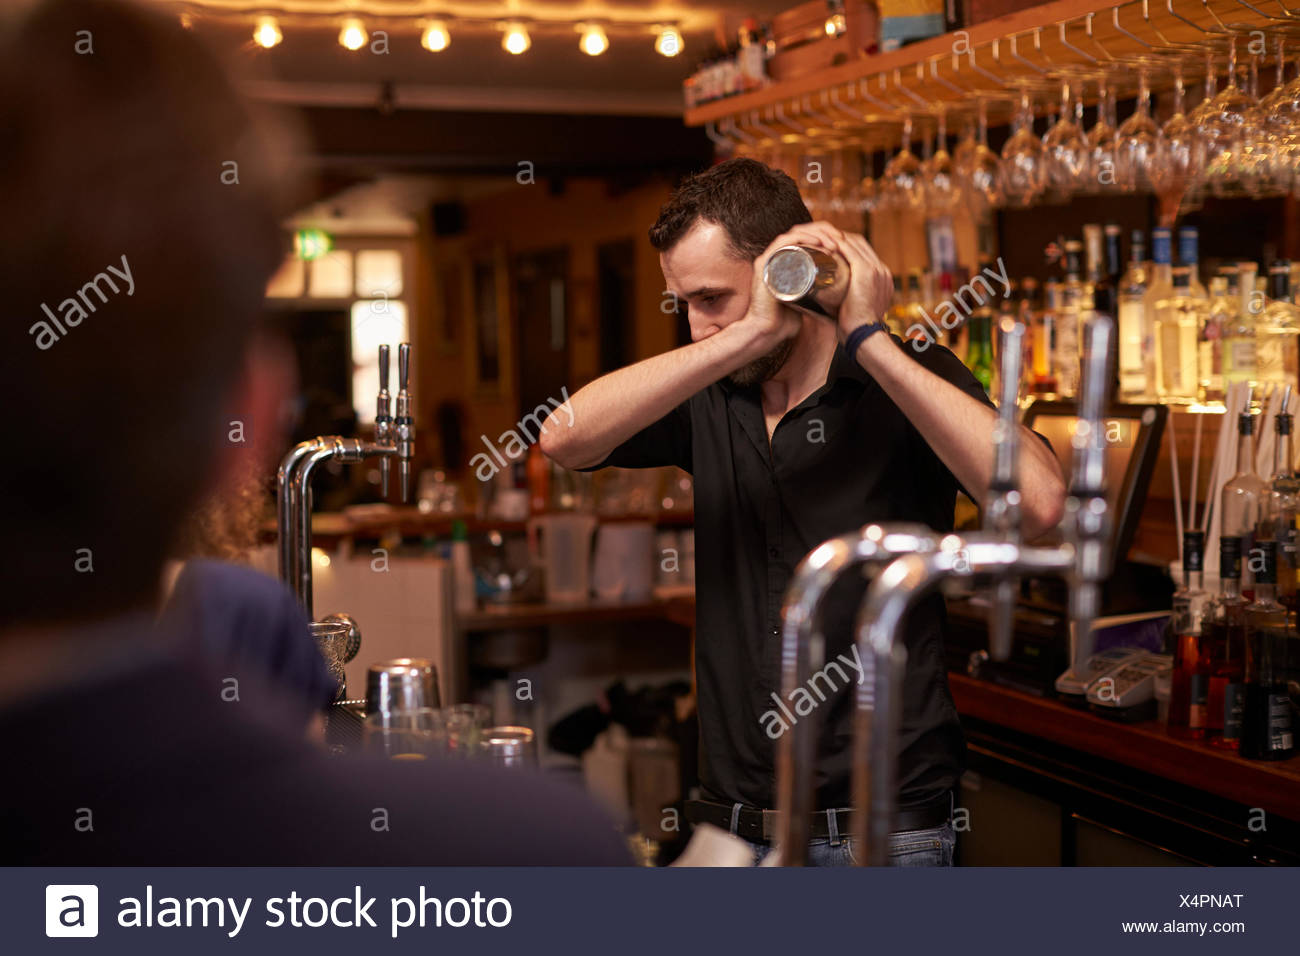 Barman Making Cocktail In Bar Using Shaker - Stock Image